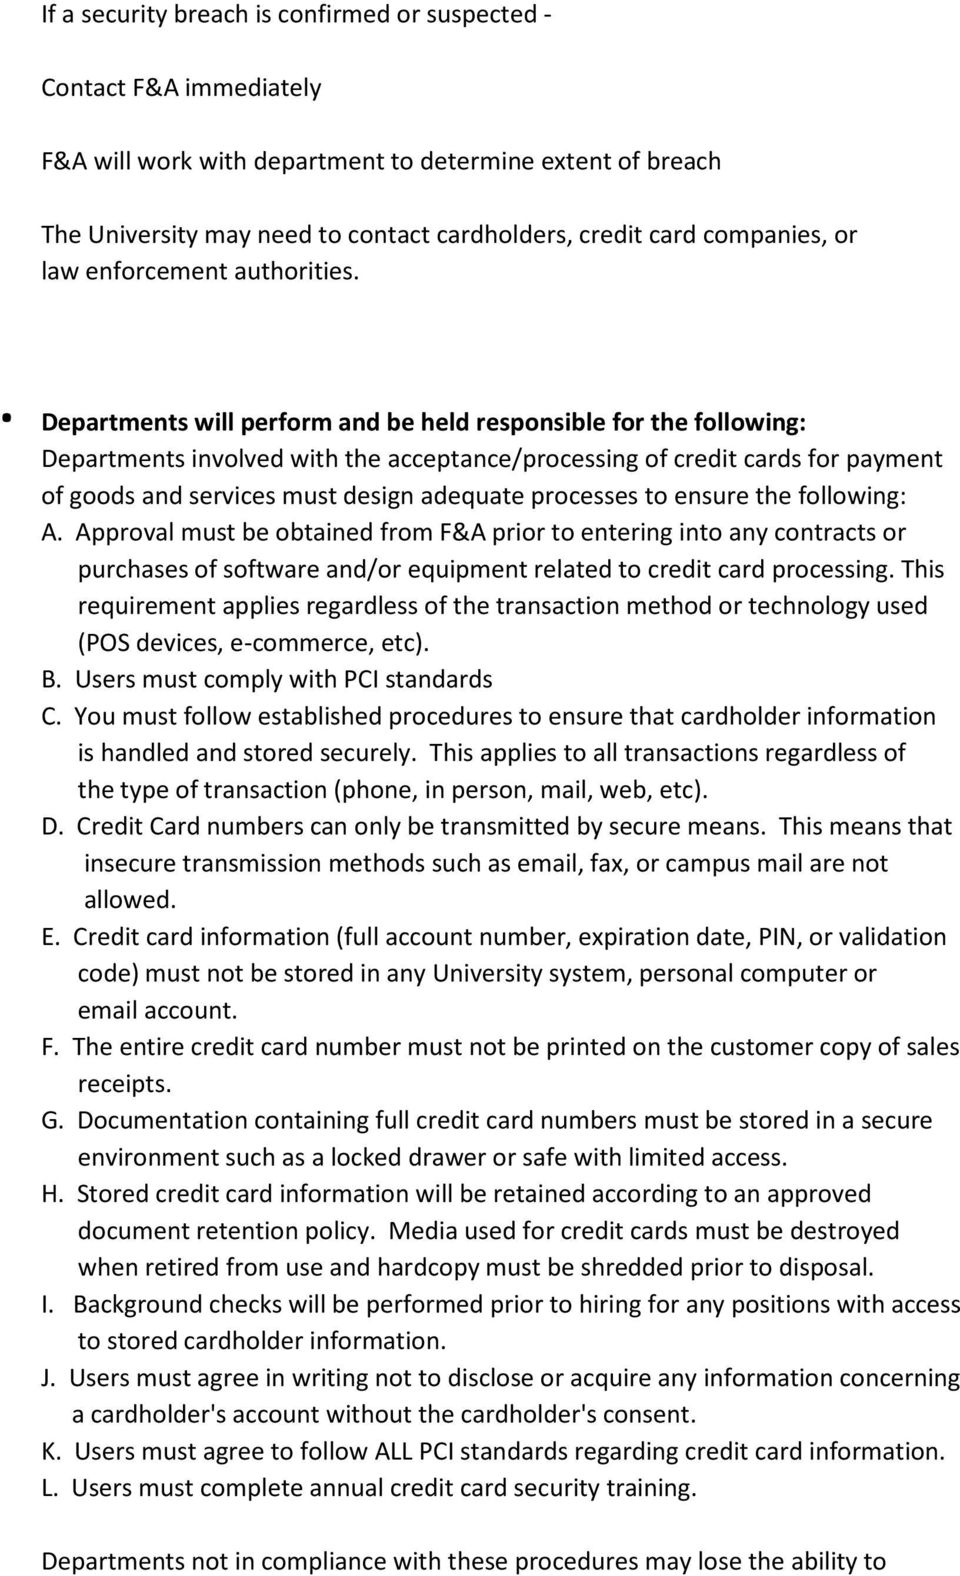 . Departments will perform and be held responsible for the following: Departments involved with the acceptance/processing of credit cards for payment of goods and services must design adequate